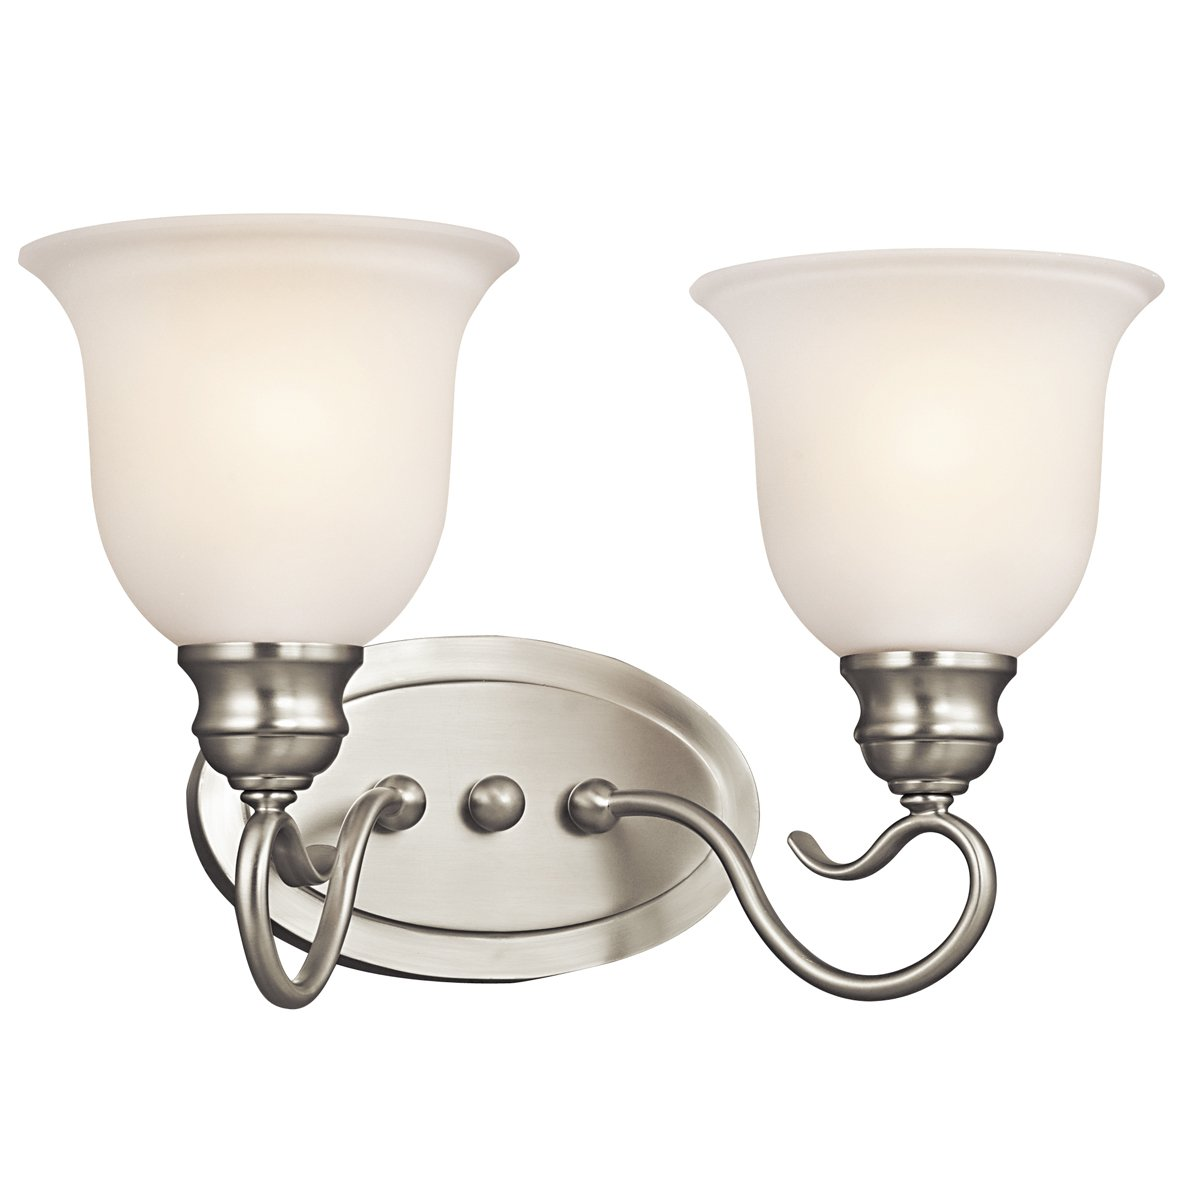 Kichler Lighting 45902NI Tanglewood 2-Light Vanity Fixture, Brushed Nickel Finish with Satin Etched Glass hot sale 2017